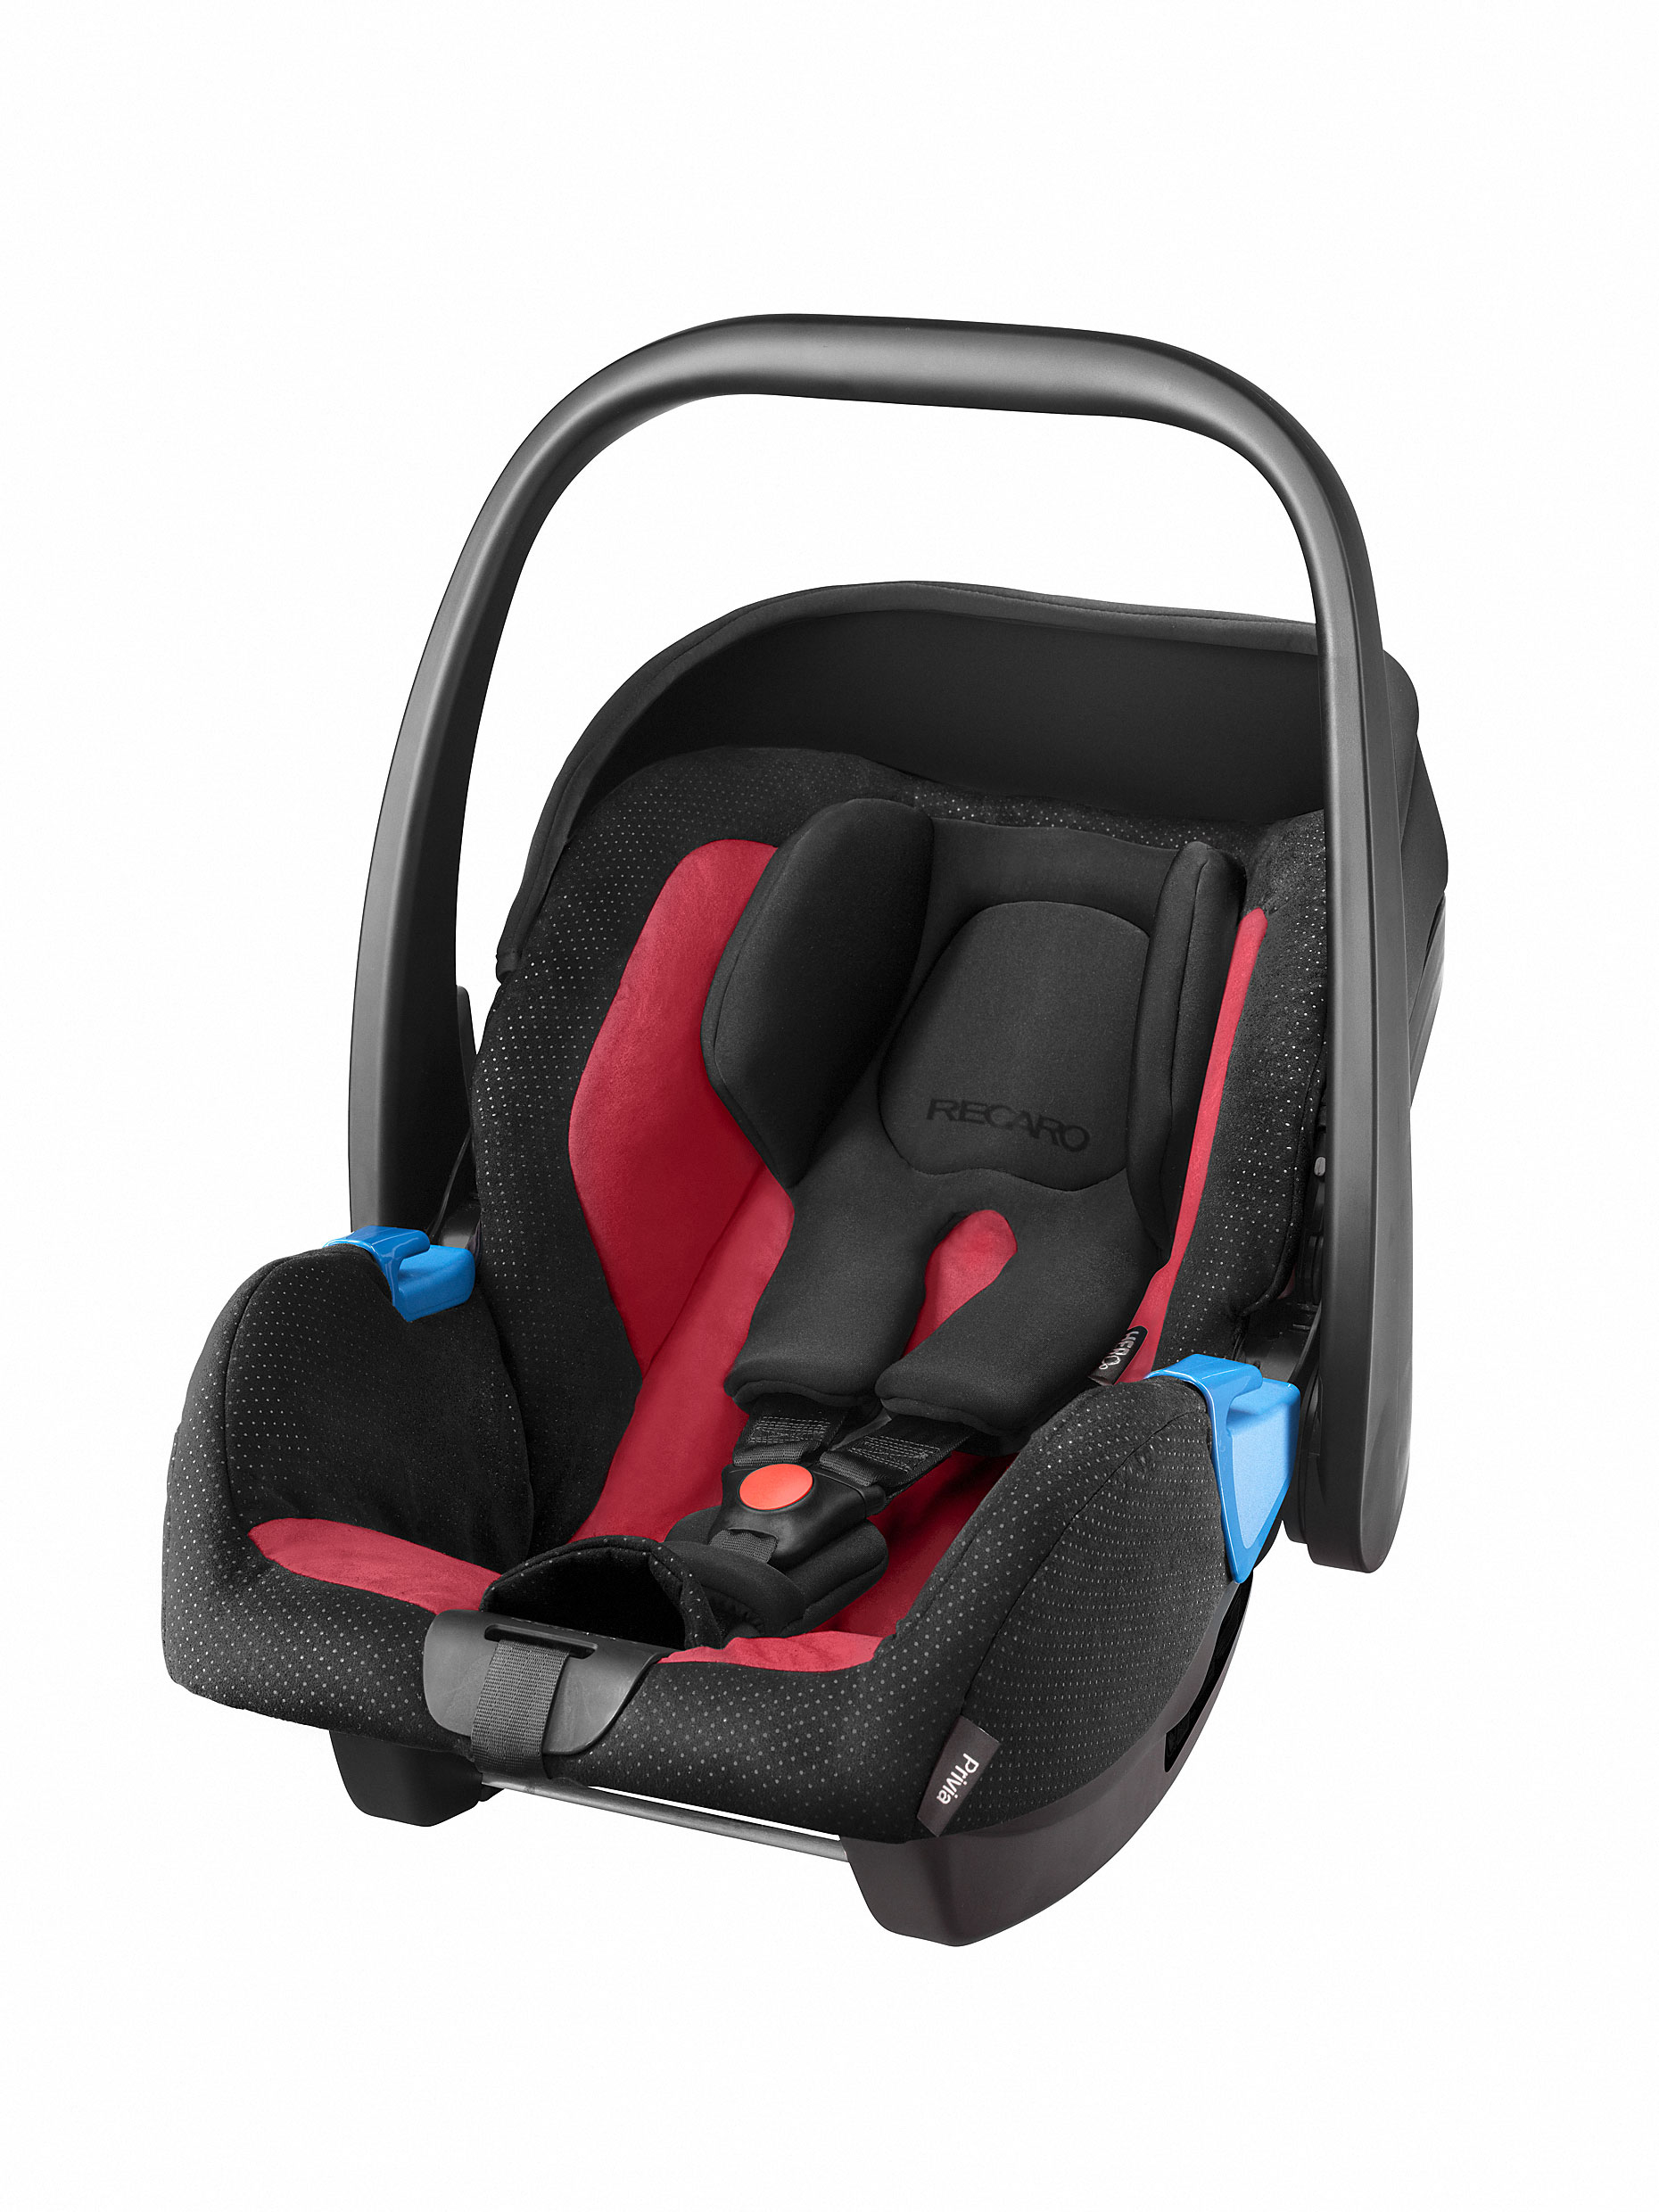 RECARO Privia Cherry